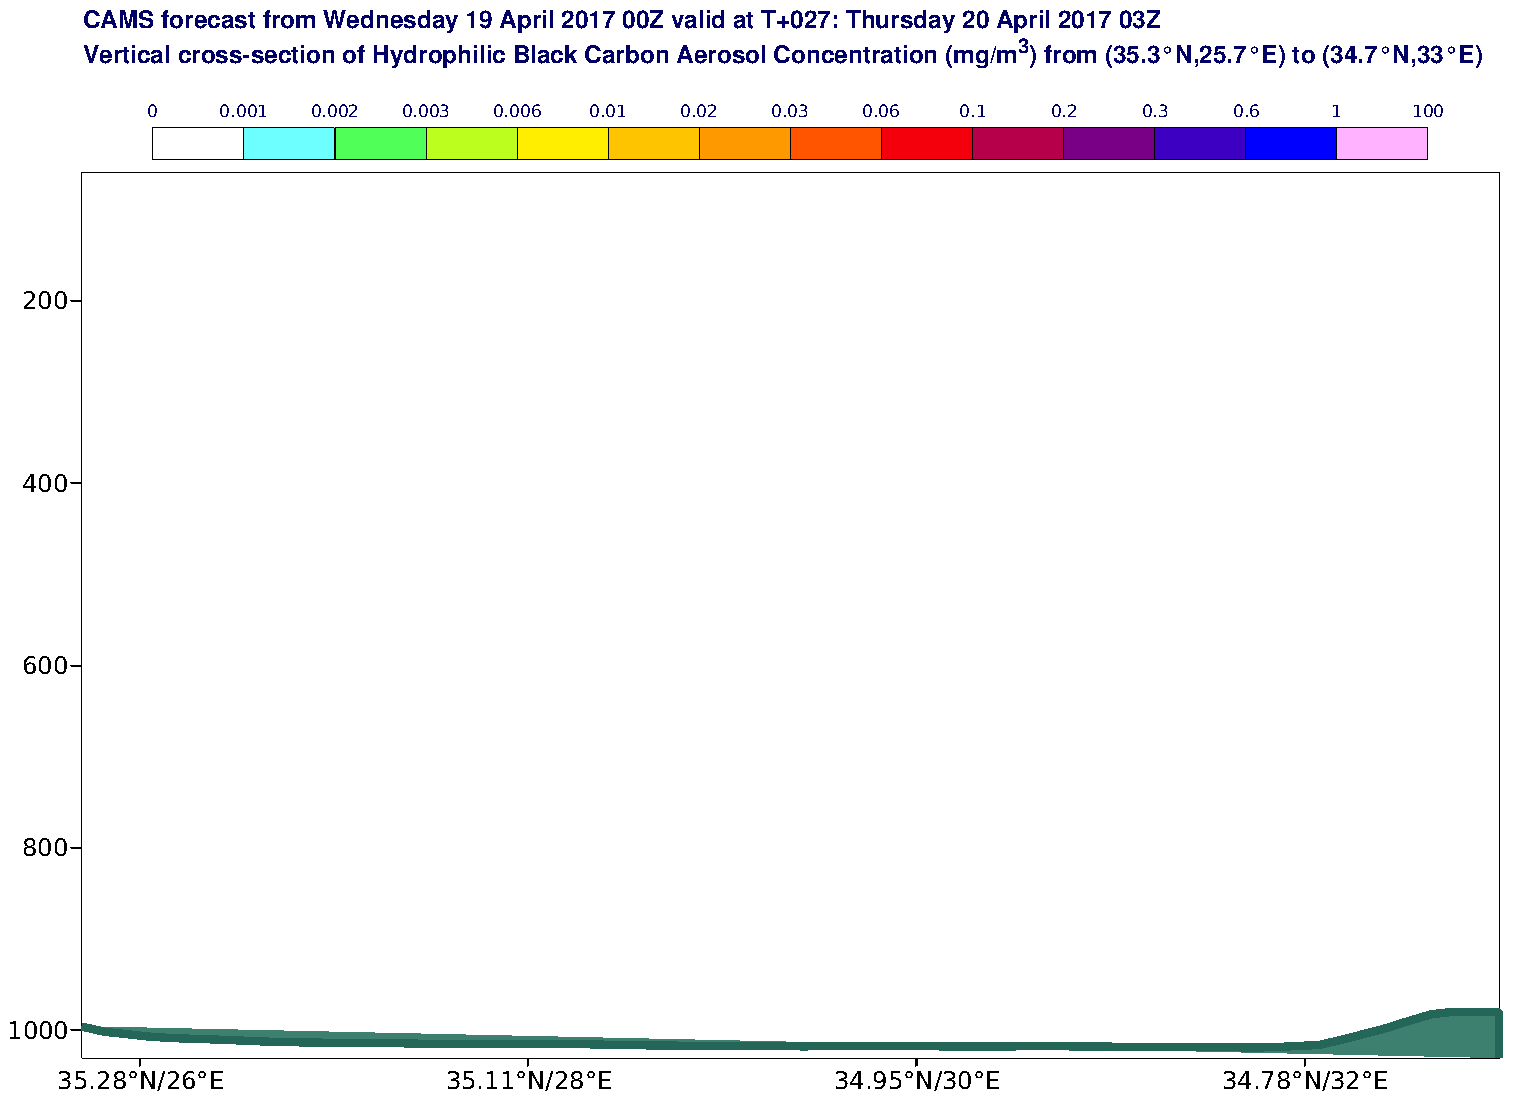 Vertical cross-section of Hydrophilic Black Carbon Aerosol Concentration (mg/m3) valid at T27 - 2017-04-20 03:00